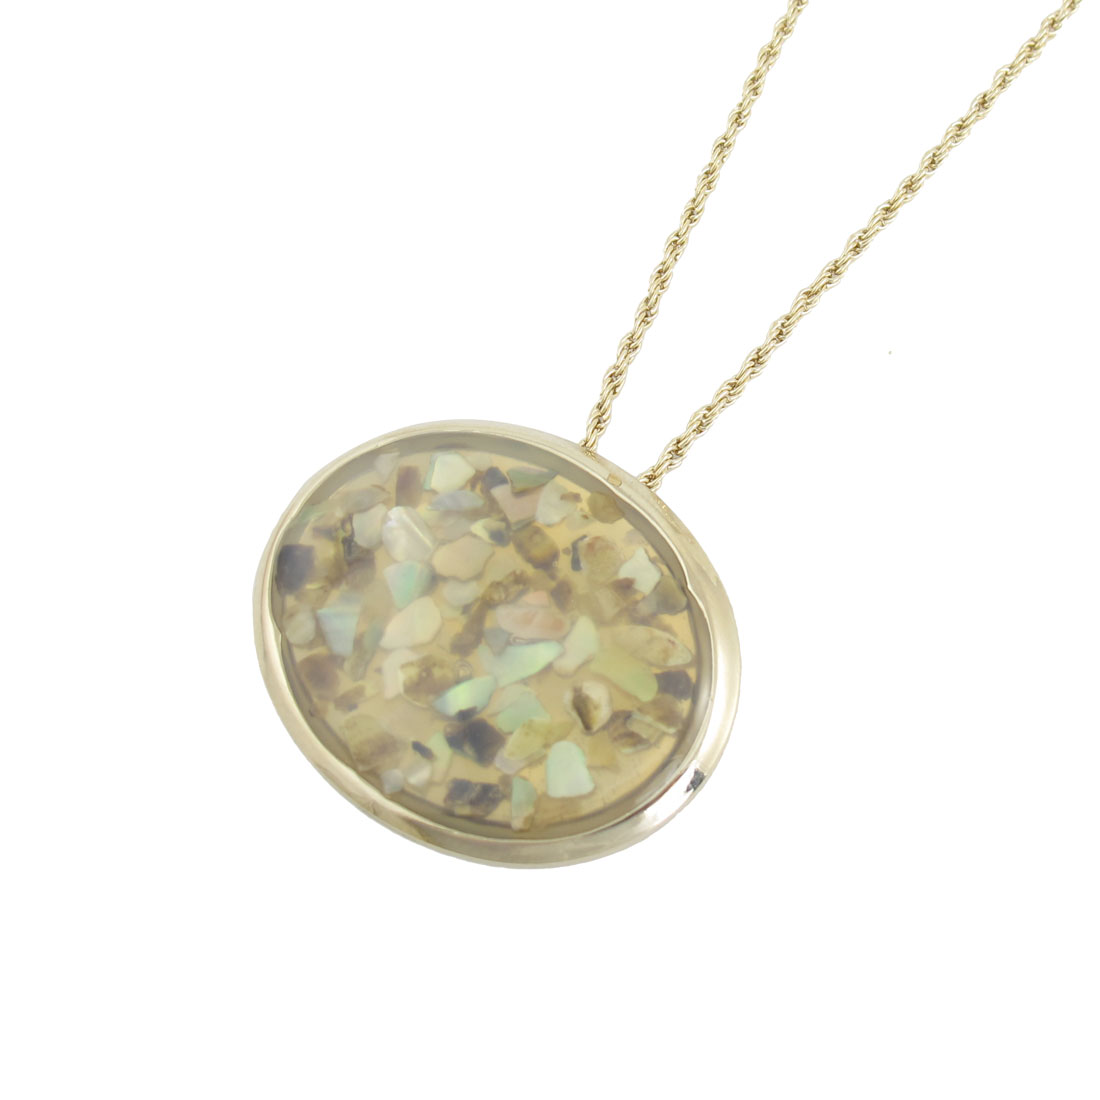 Plastic Crystal Inlaid Oval Pendant Necklace Gold Tone for Women